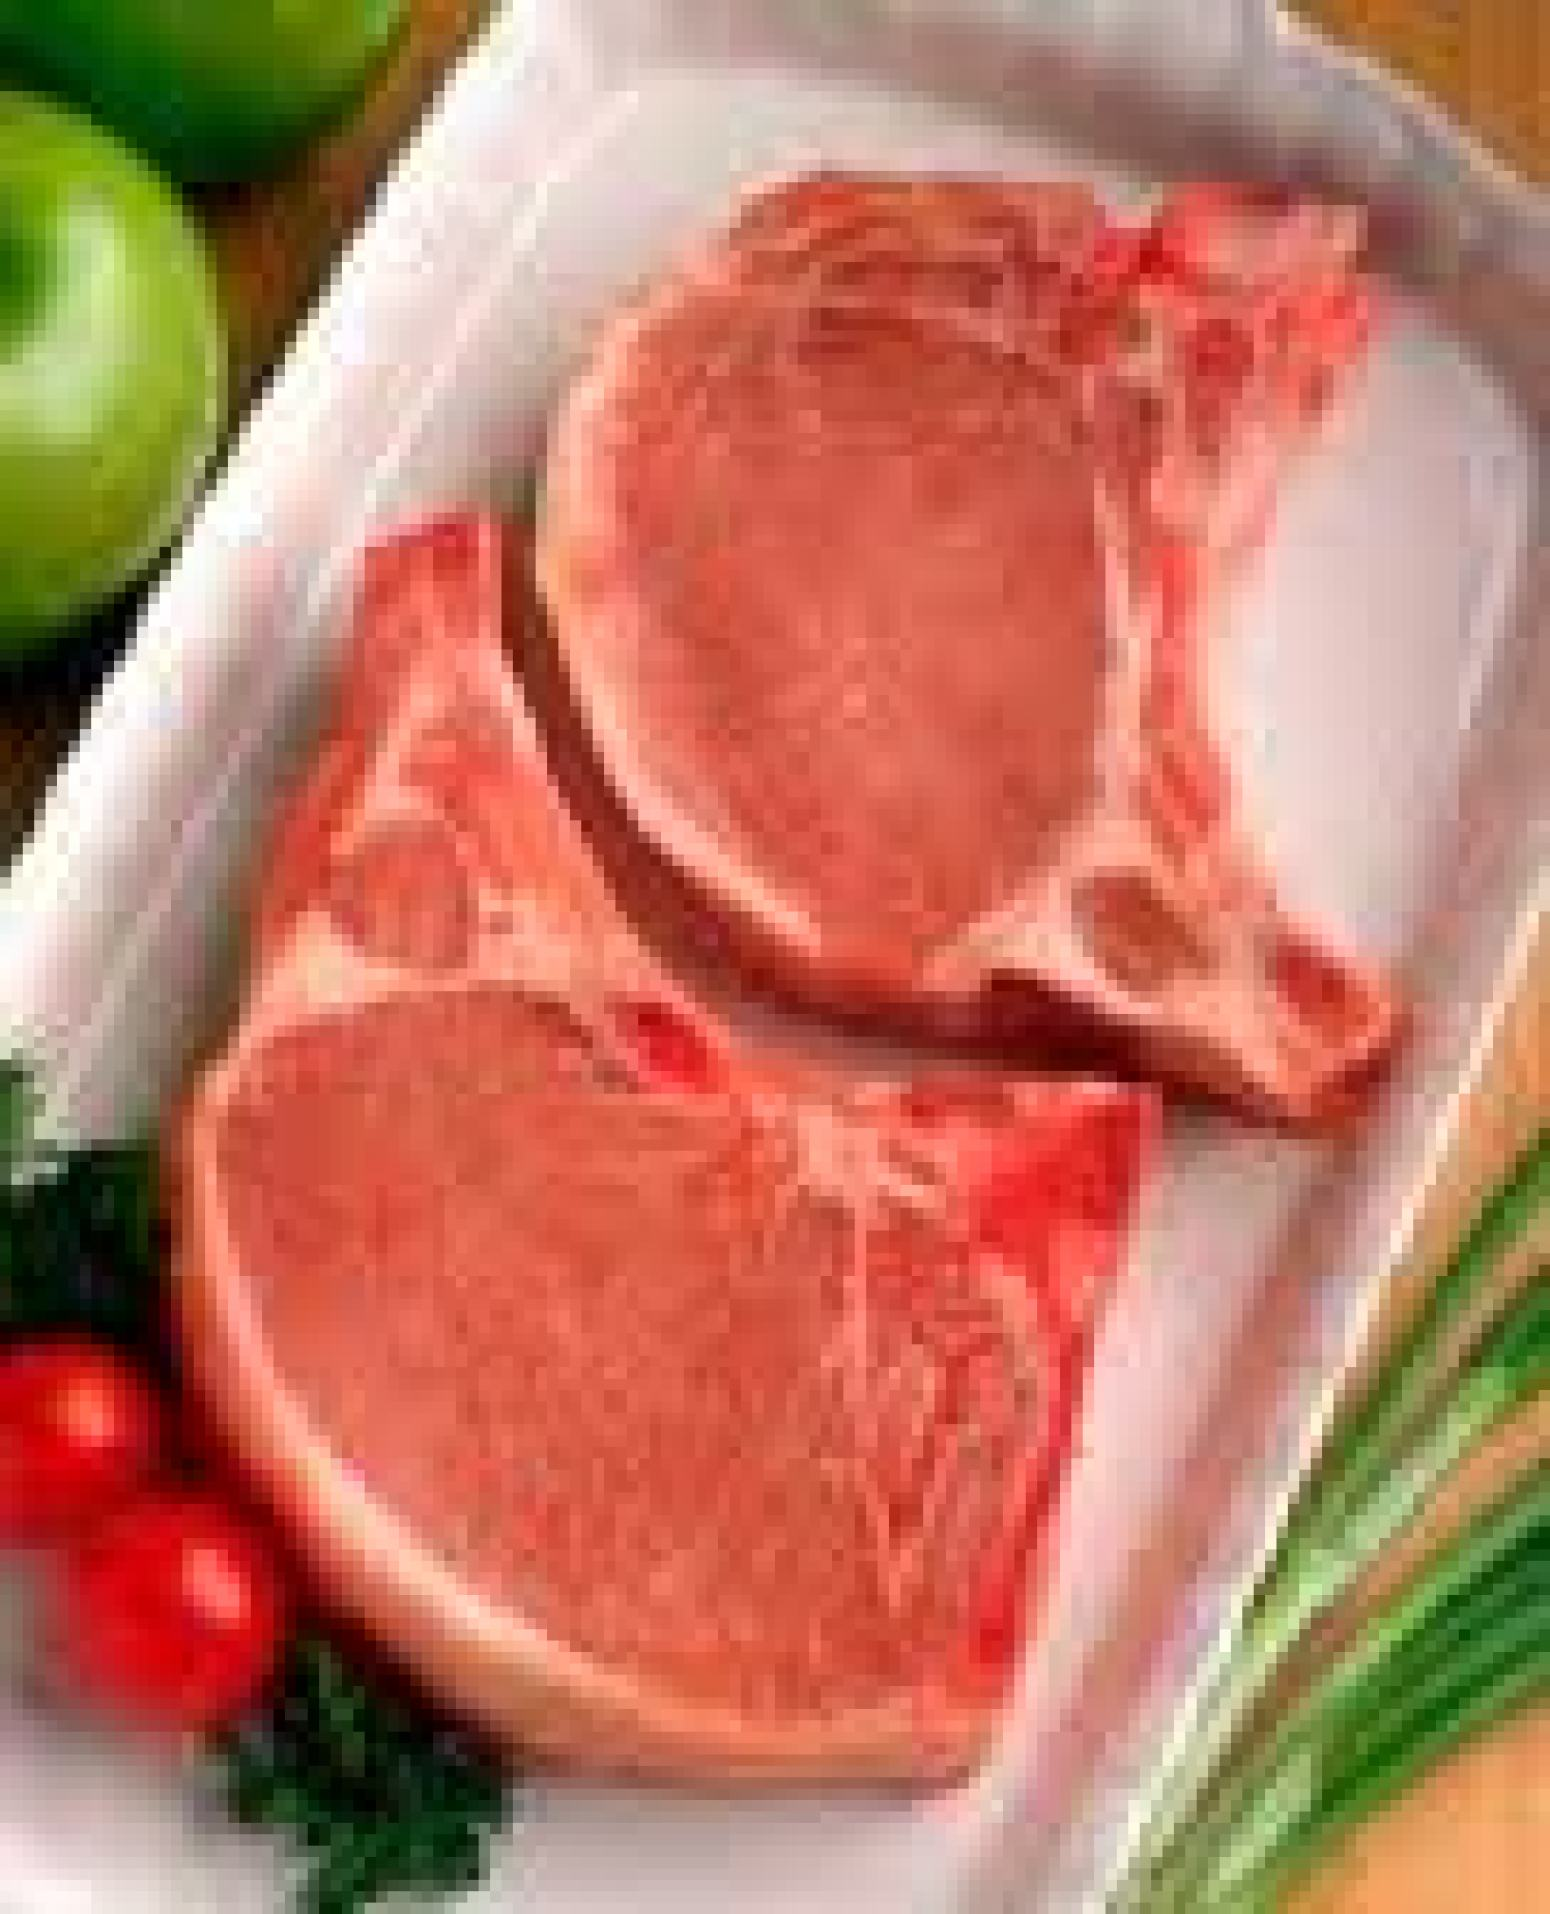 how to cook pork chop in pressure cooker